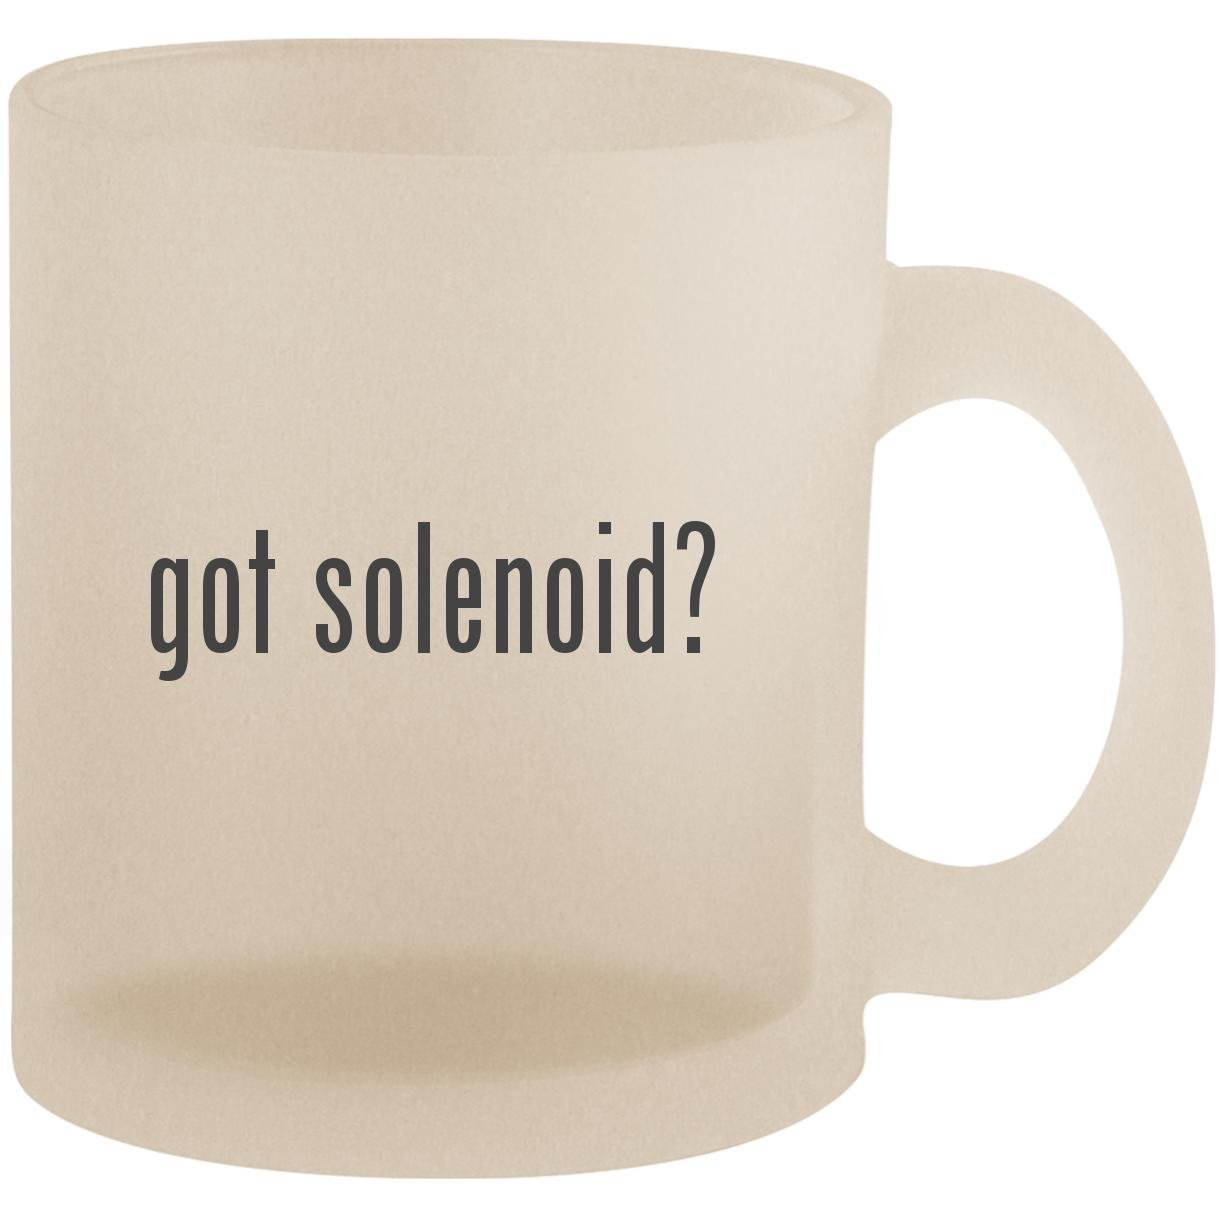 got solenoid? - Frosted 10oz Glass Coffee Cup Mug